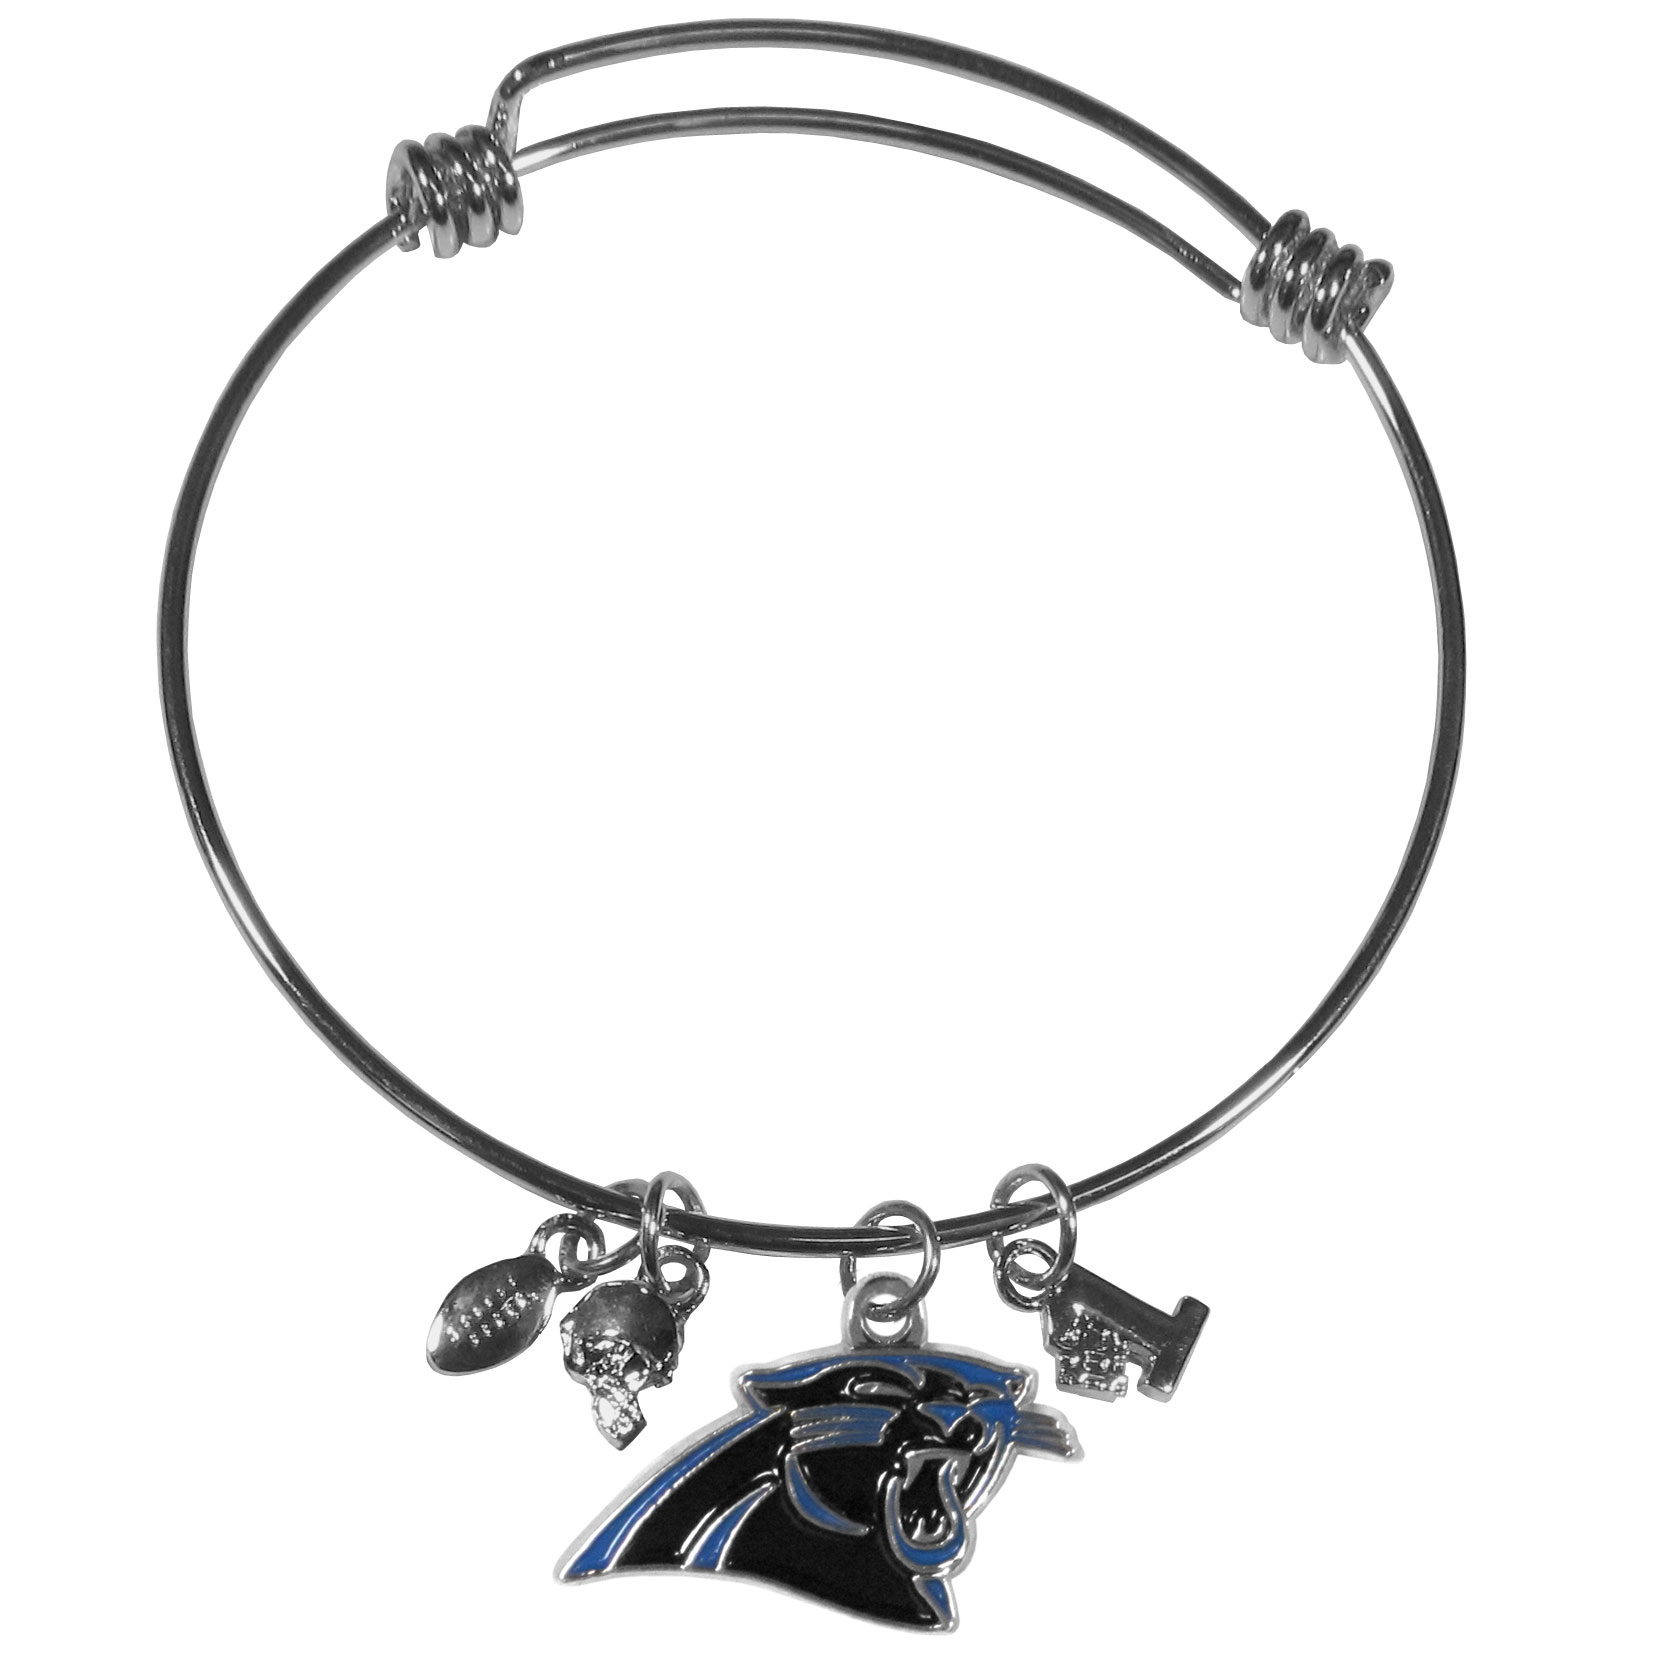 Carolina Panthers Charm Bangle Bracelet - Adjustable wire bracelets are all the rage and this Carolina Panthers bracelet matches the popular trend with your beloved team. The bracelet features 4 charms in total, each feature exceptional detail and the team charm has enameled team colors.